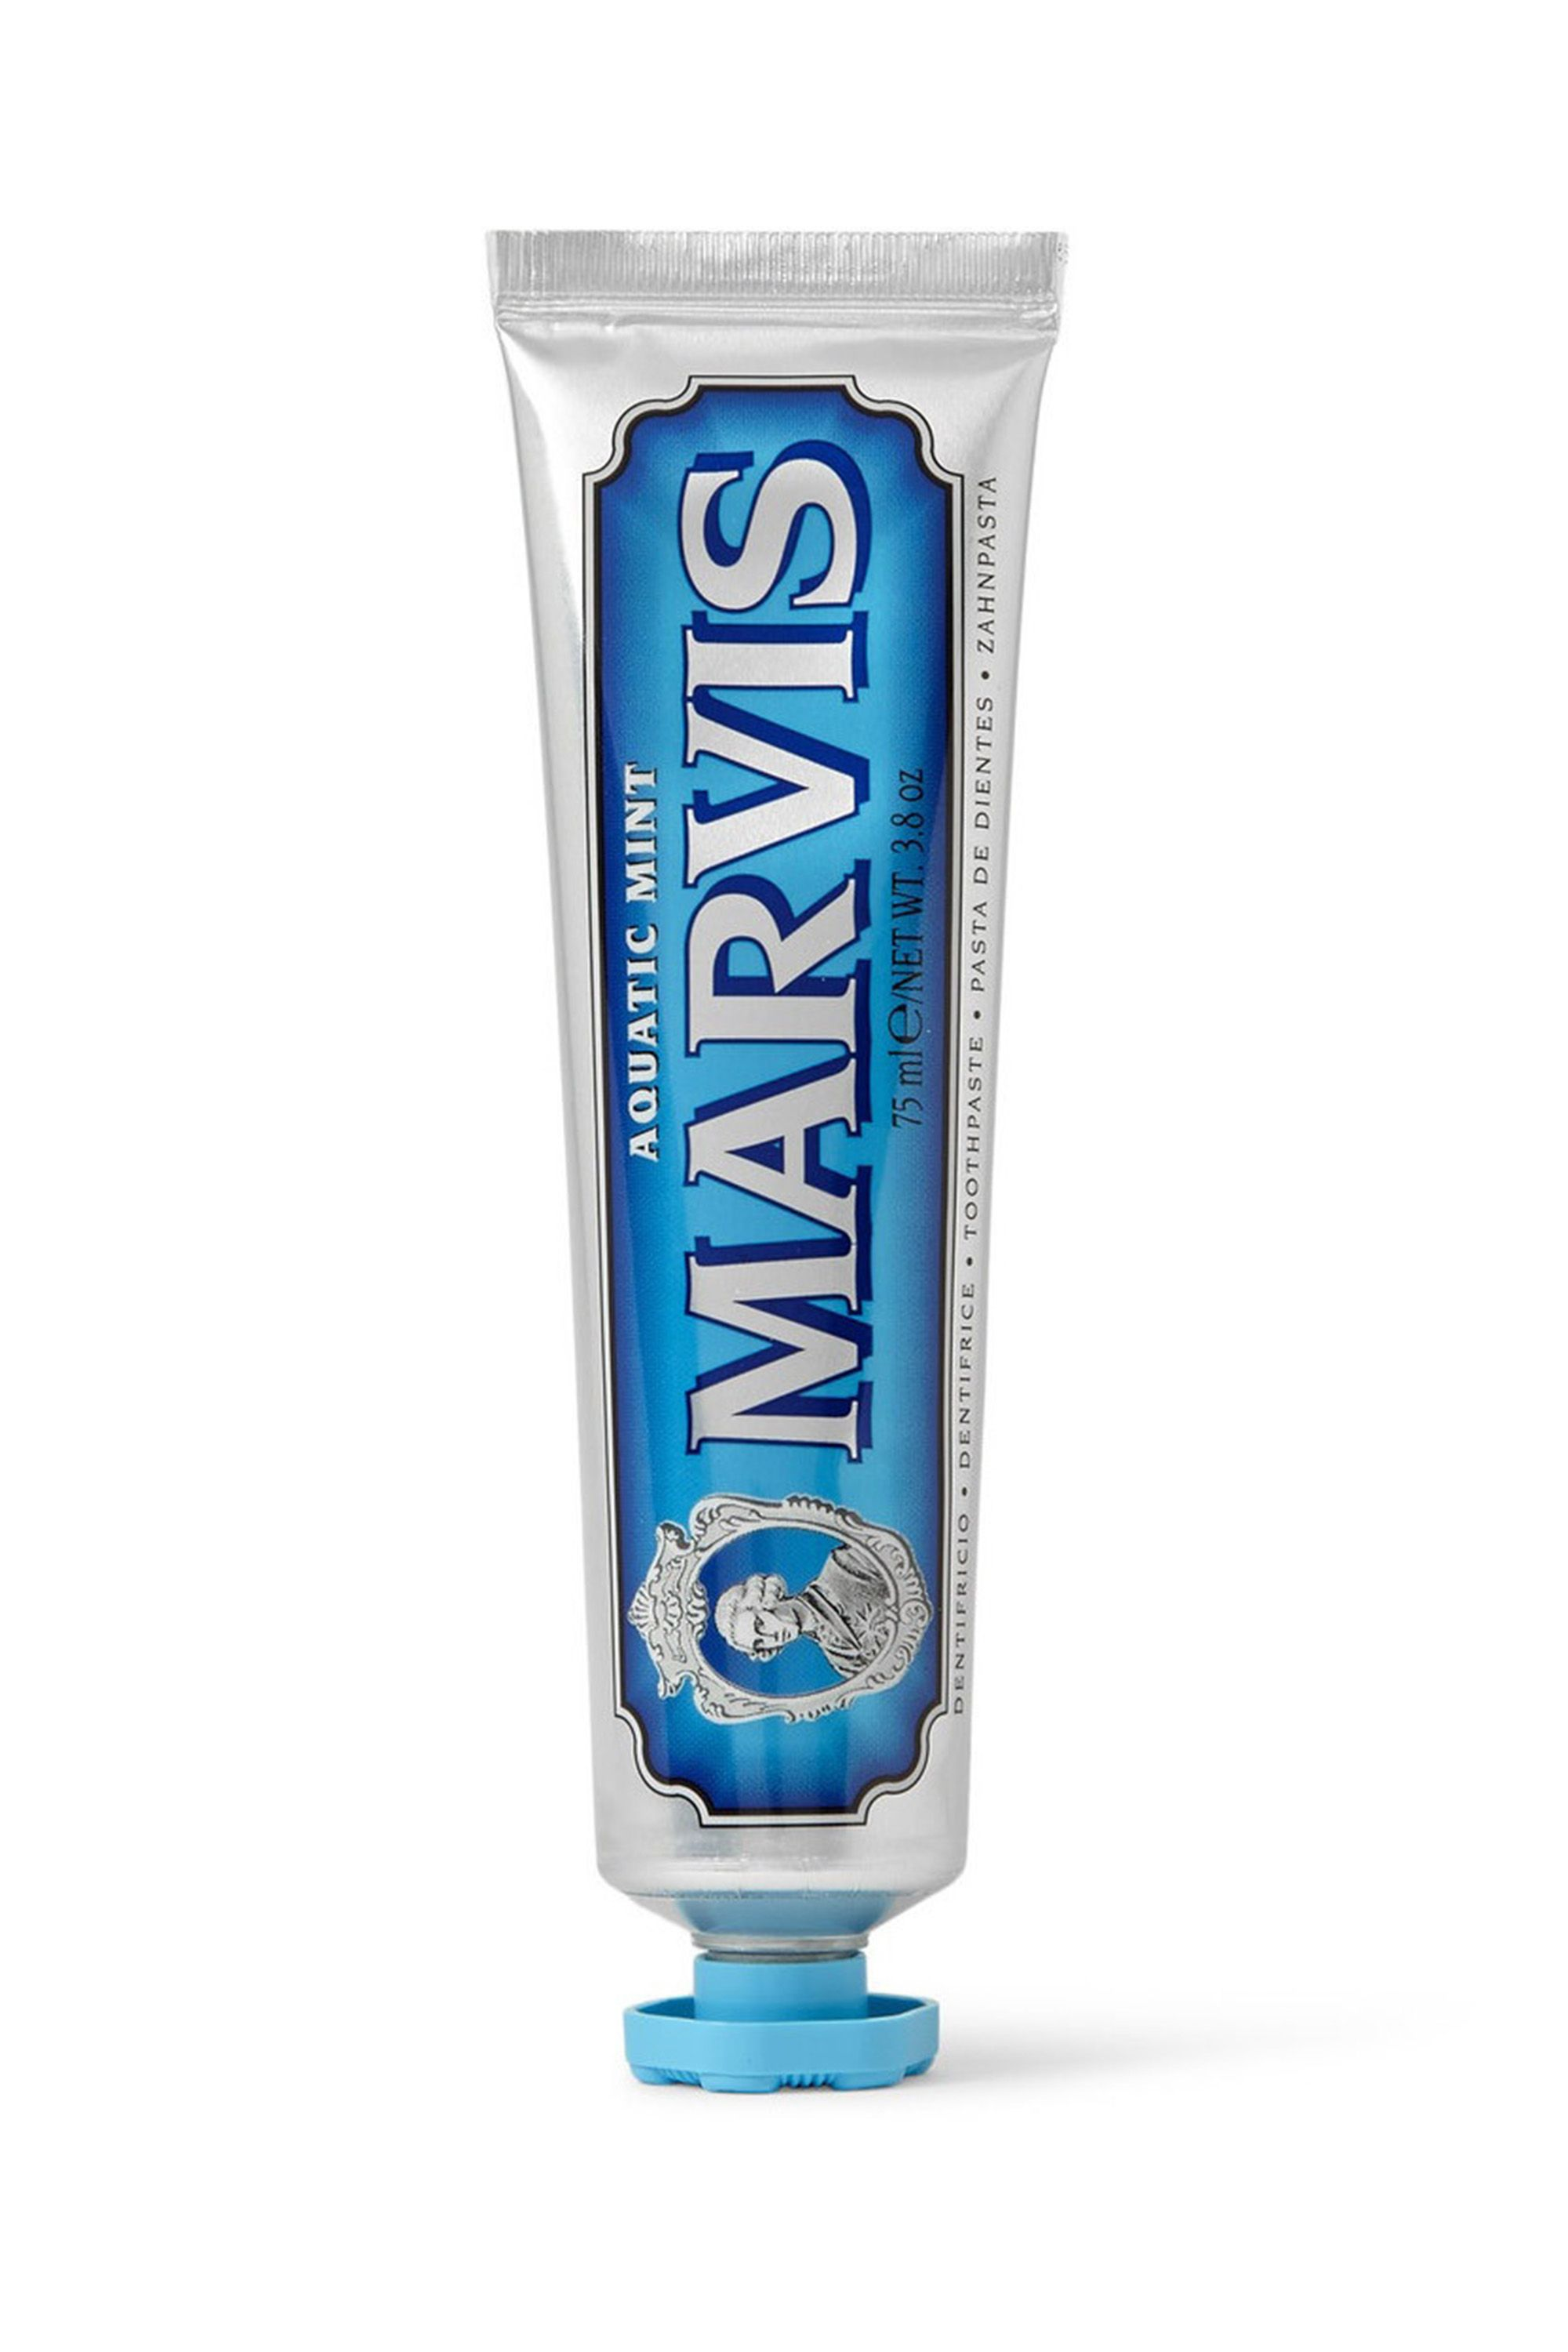 "<p>When I found myself toothpasteless upstate one weekend, I grabbed a travel-sized Marvis tube in the kind of store that has both crystals and 70 types of fragranced candles in every color imaginable. This Italian brand is a little bit fancy, but it's homey. I have no idea what ""Aquatic Mint"" is, but I like it—the refreshing flavor is kind of like a bracing ocean breeze.- Estelle Tang, ELLE.com Culture Editor</p><p><em data-redactor-tag=""em"" data-verified=""redactor"">Marvis Aquatic Mint Toothpaste, $10.50; </em><a href=""http://www.sephora.com/aquatic-mint-toothpaste-P399222"" target=""_blank""><em data-redactor-tag=""em"" data-verified=""redactor"">sephora.com</em></a></p>"